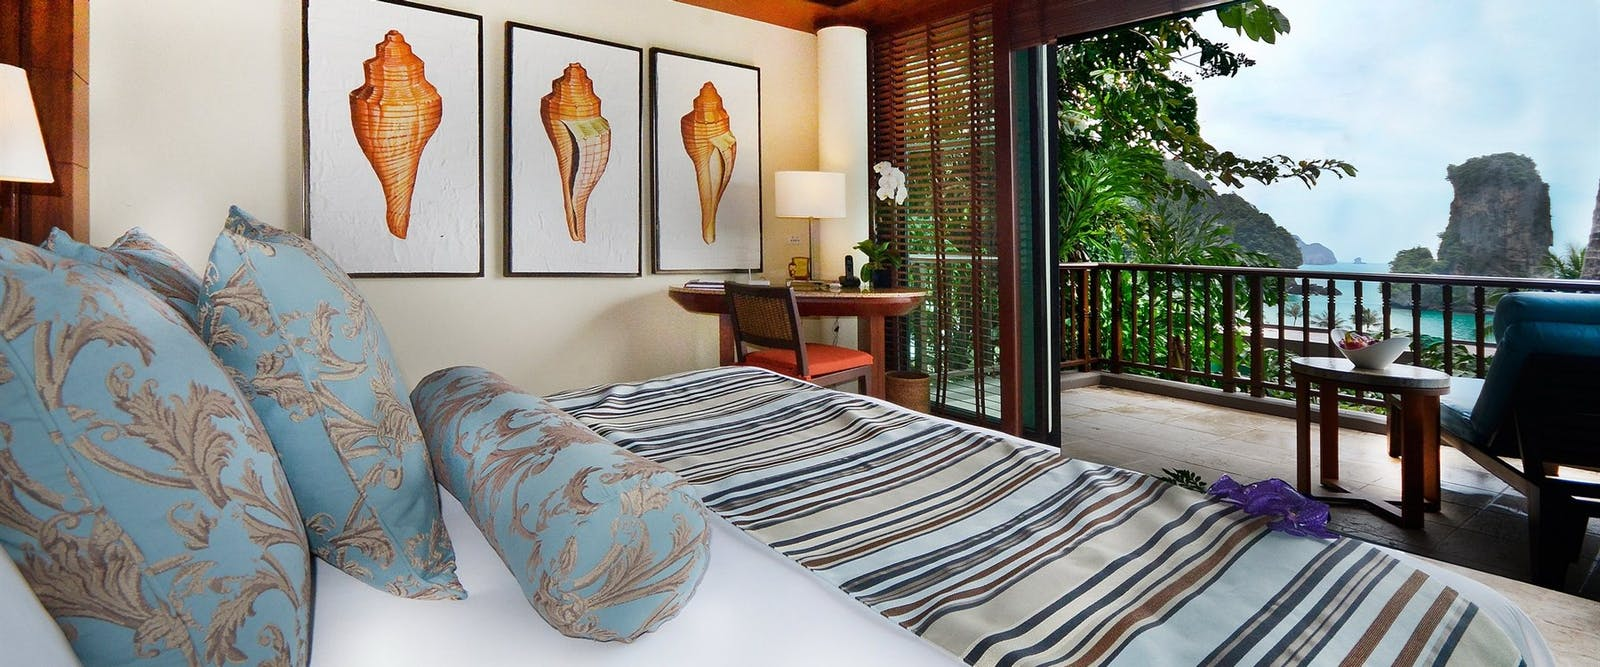 deluxe ocean facing room at Centara Grand Beach Resort & Villas Krabi